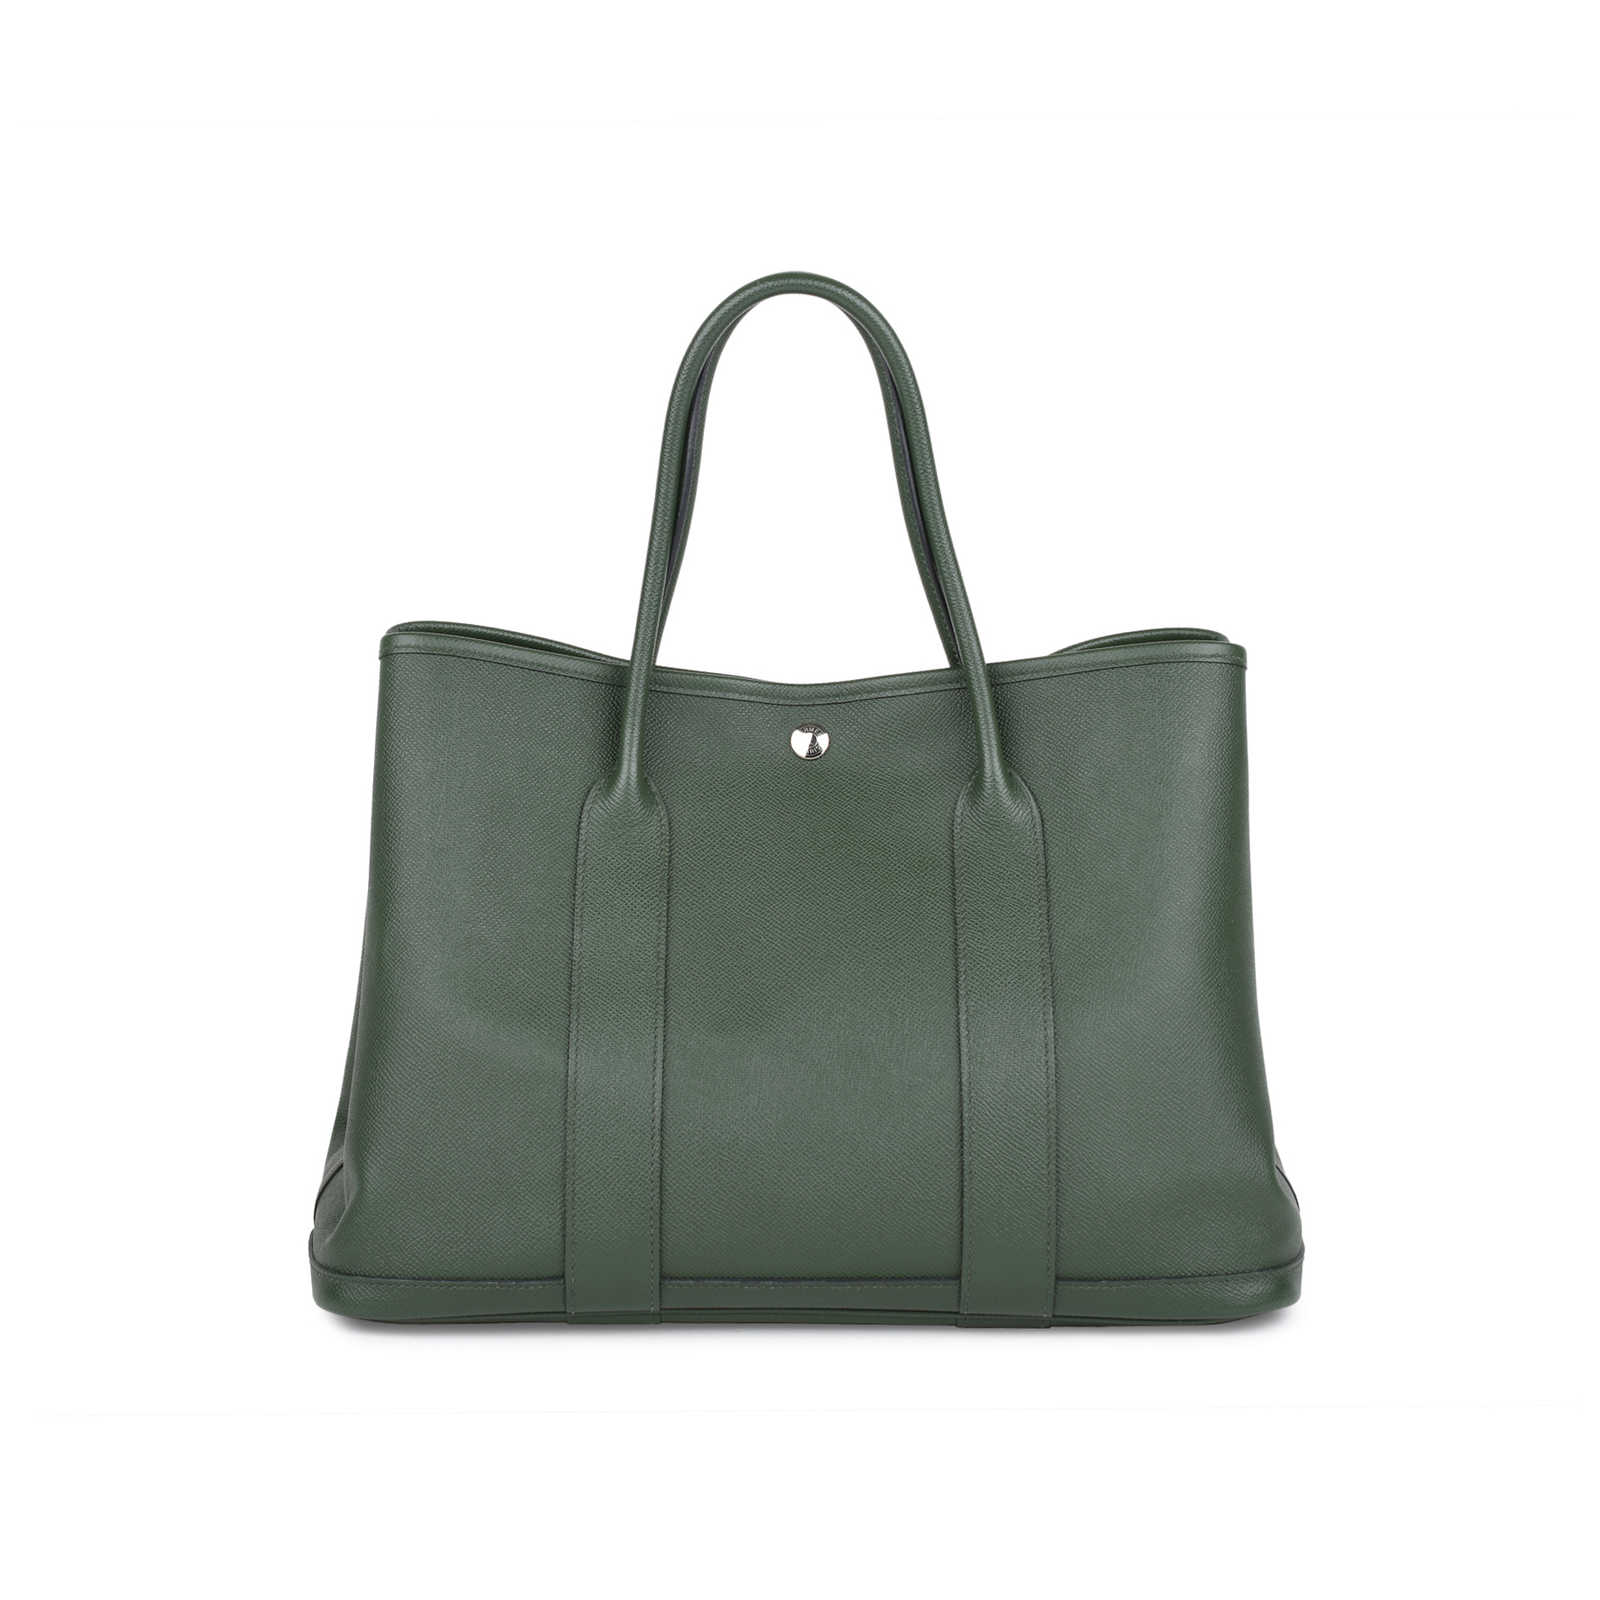 7b054f3e10f7 Authentic Second Hand Hermès Garden Party 36 Bag (PSS-420-00055) ...